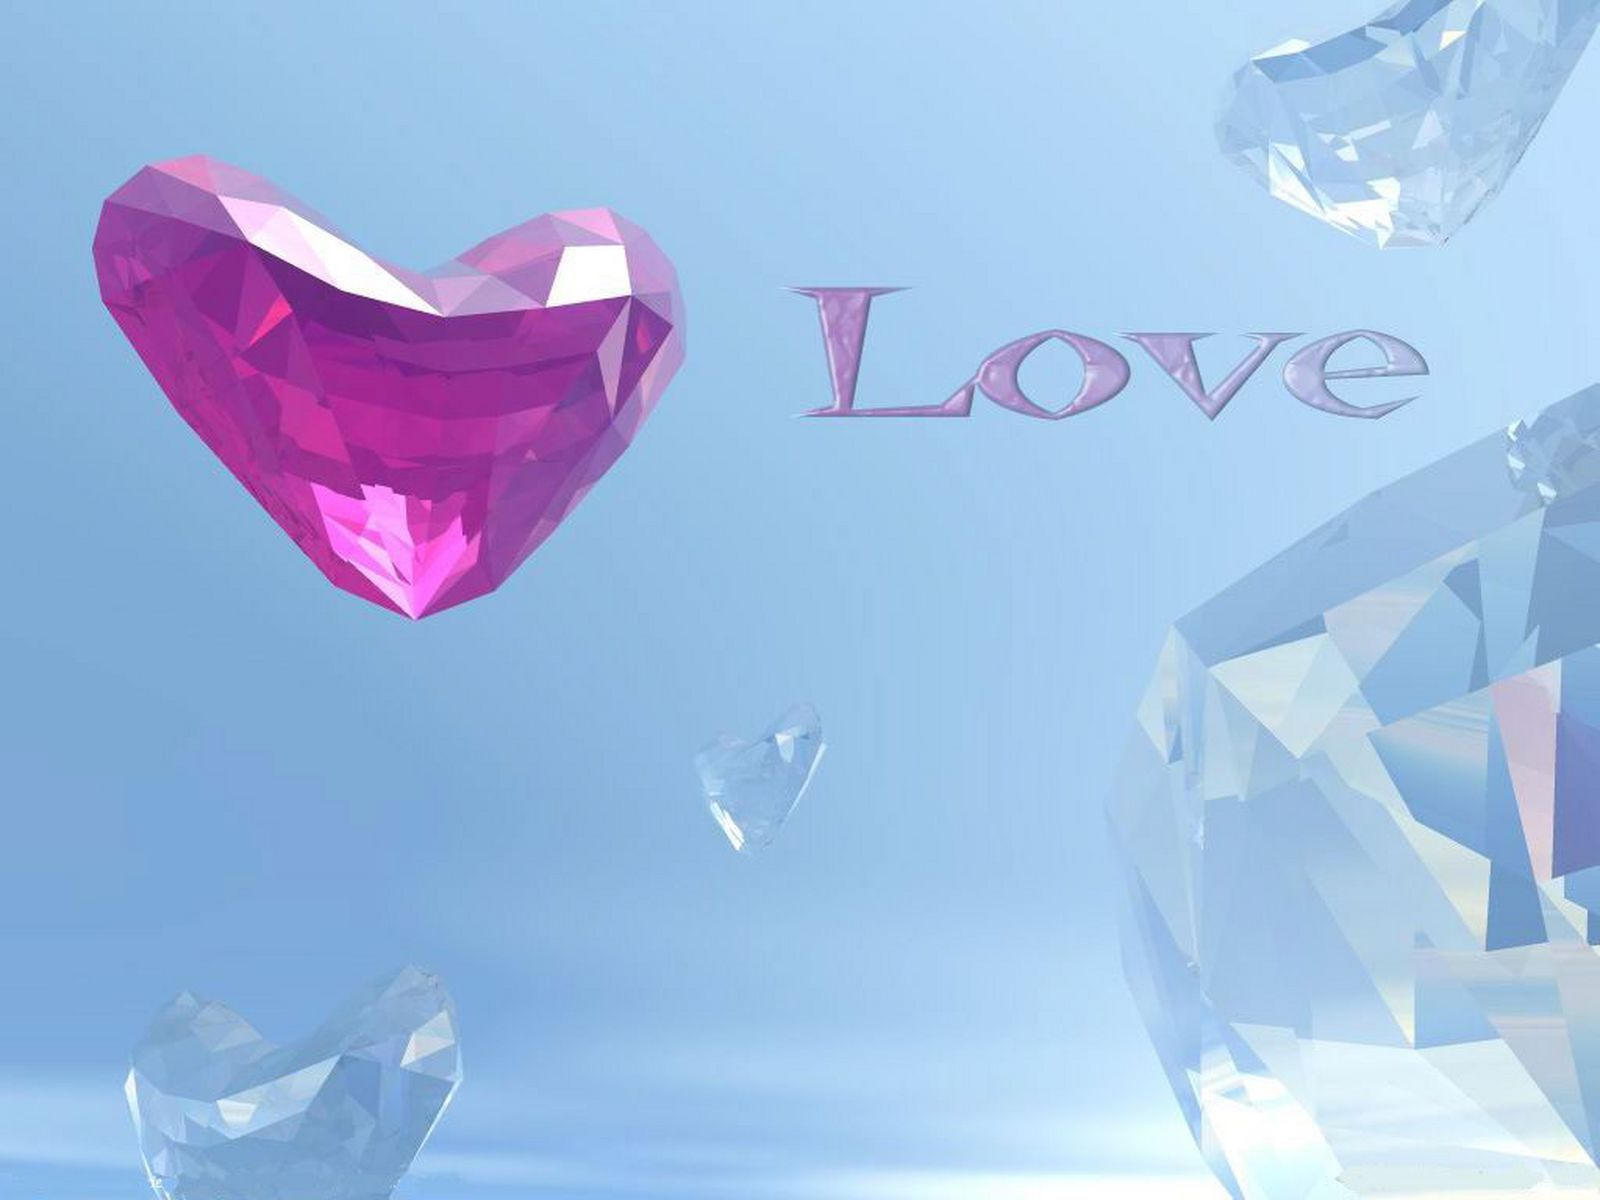 Love Wallpaper 3d Image : Tamil`zLoveZone: Love Wallpapers